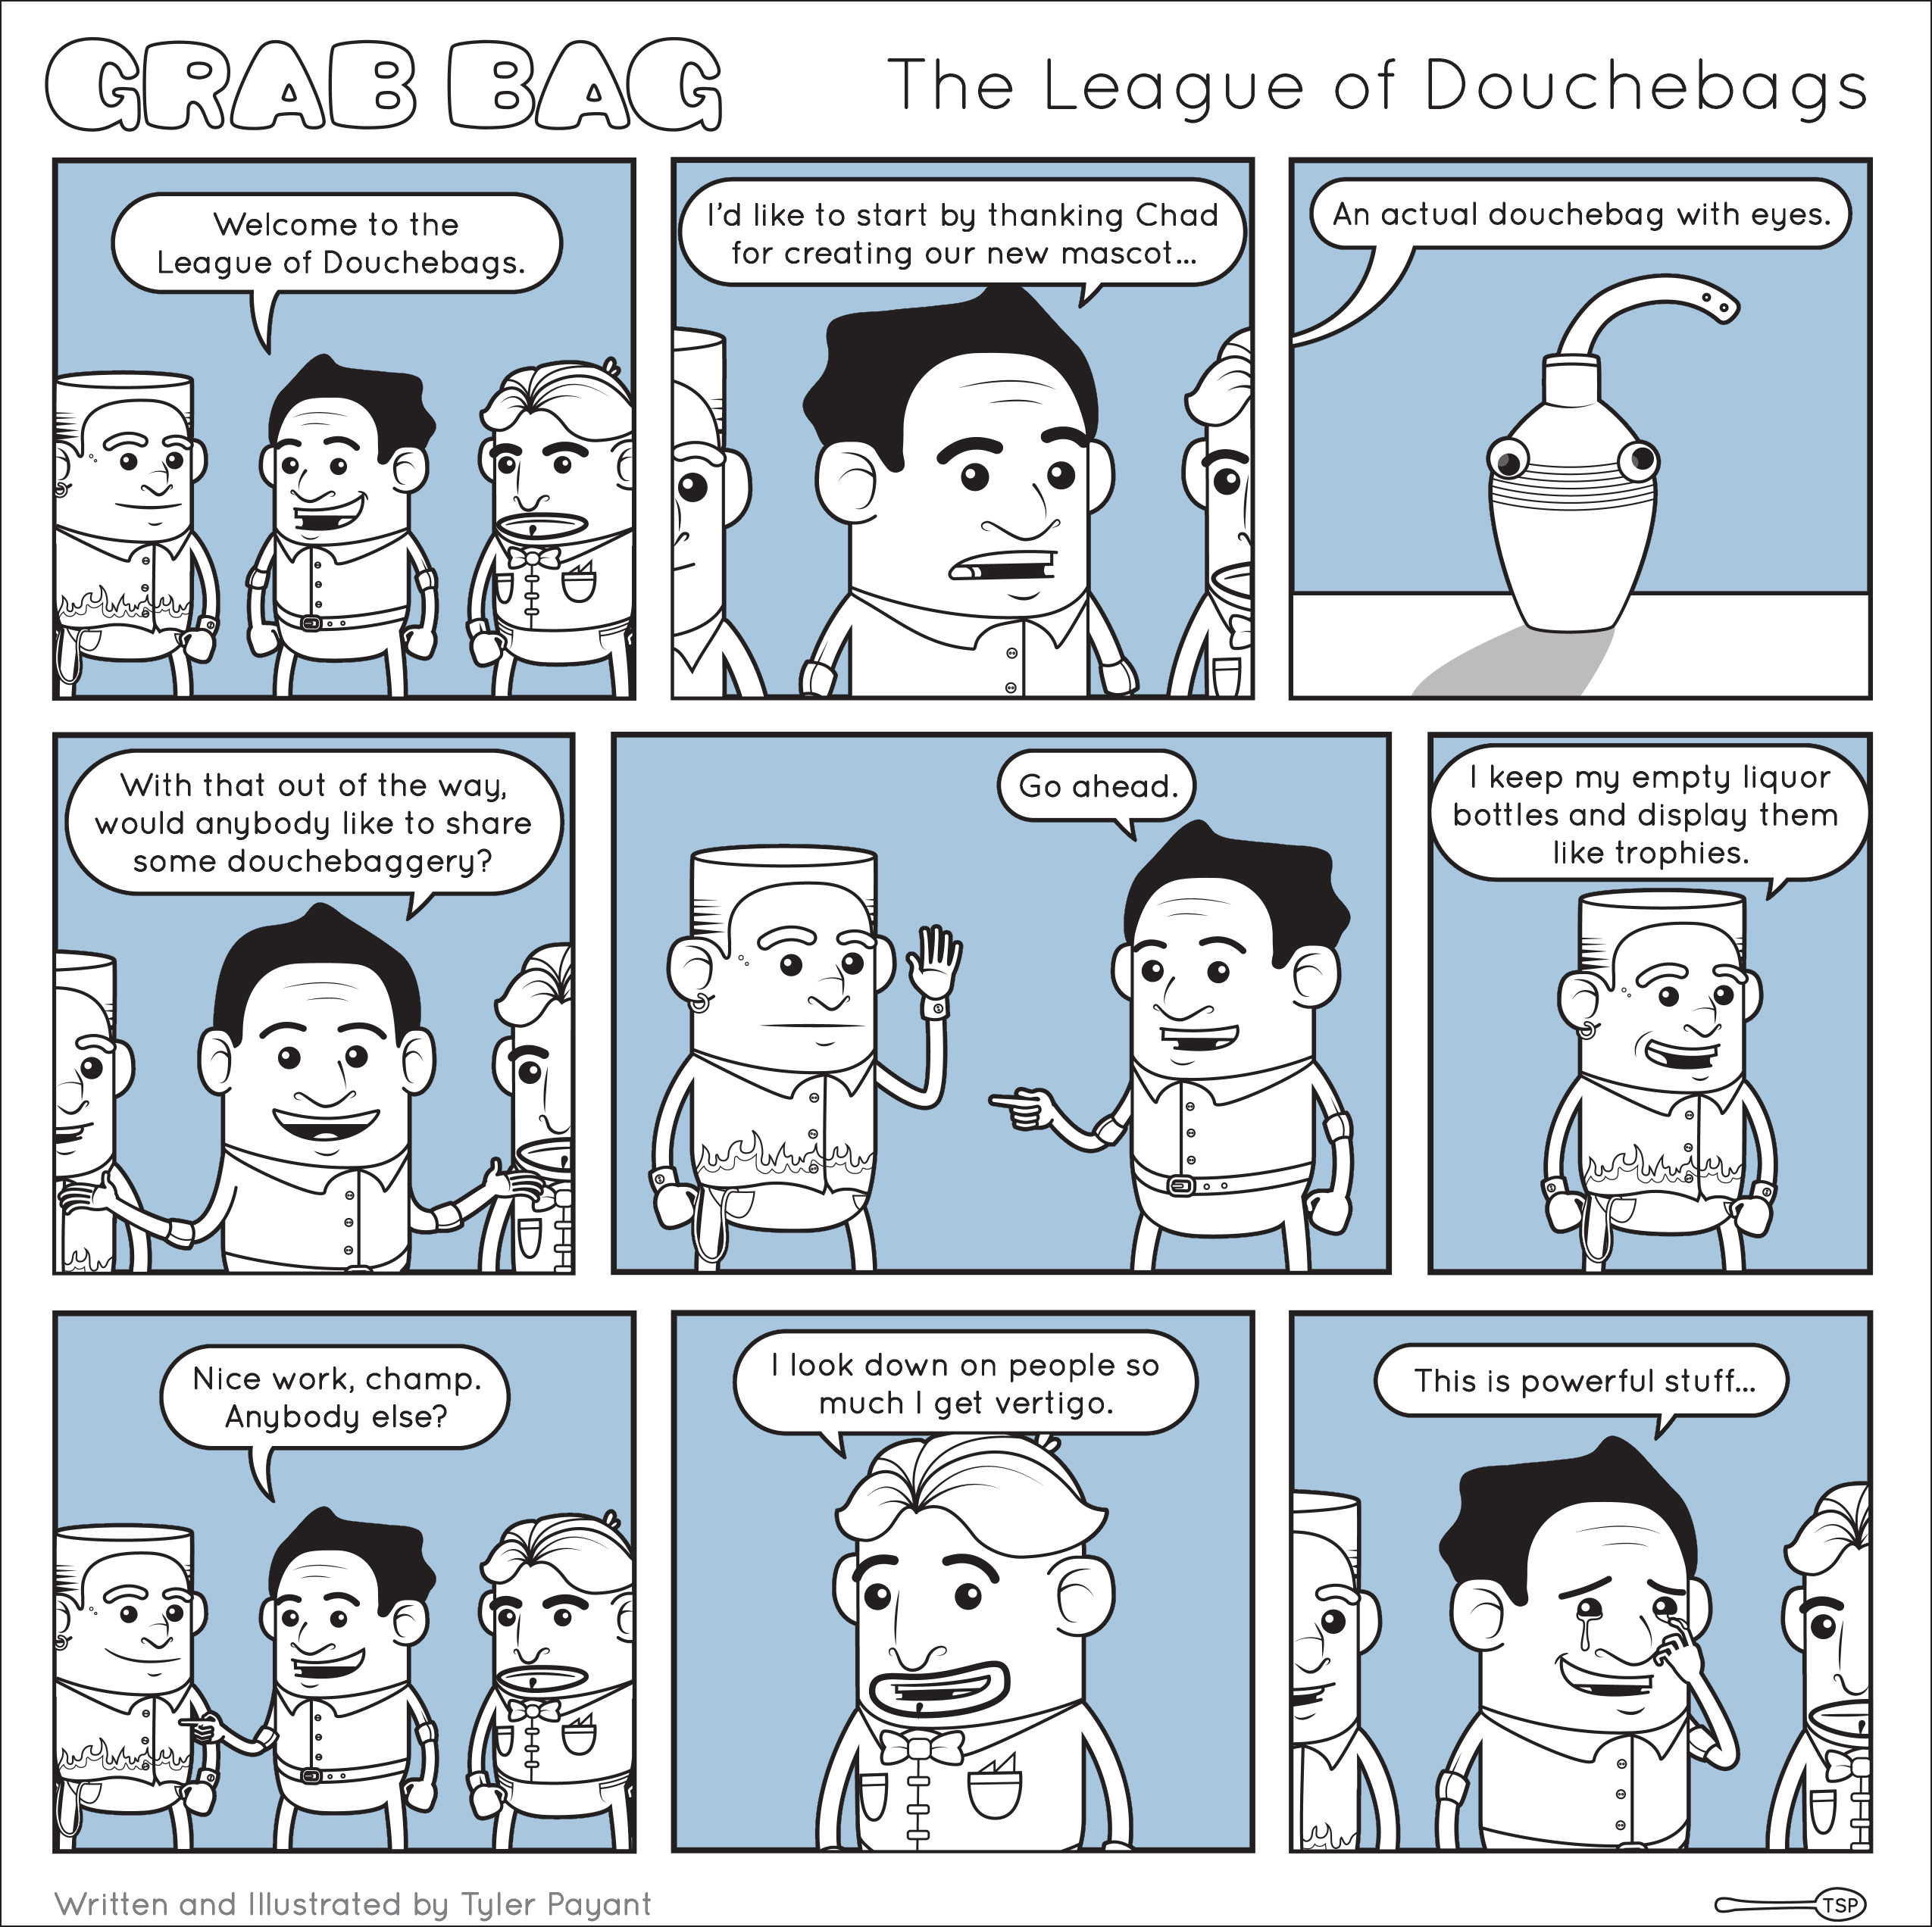 The League of Douchebags